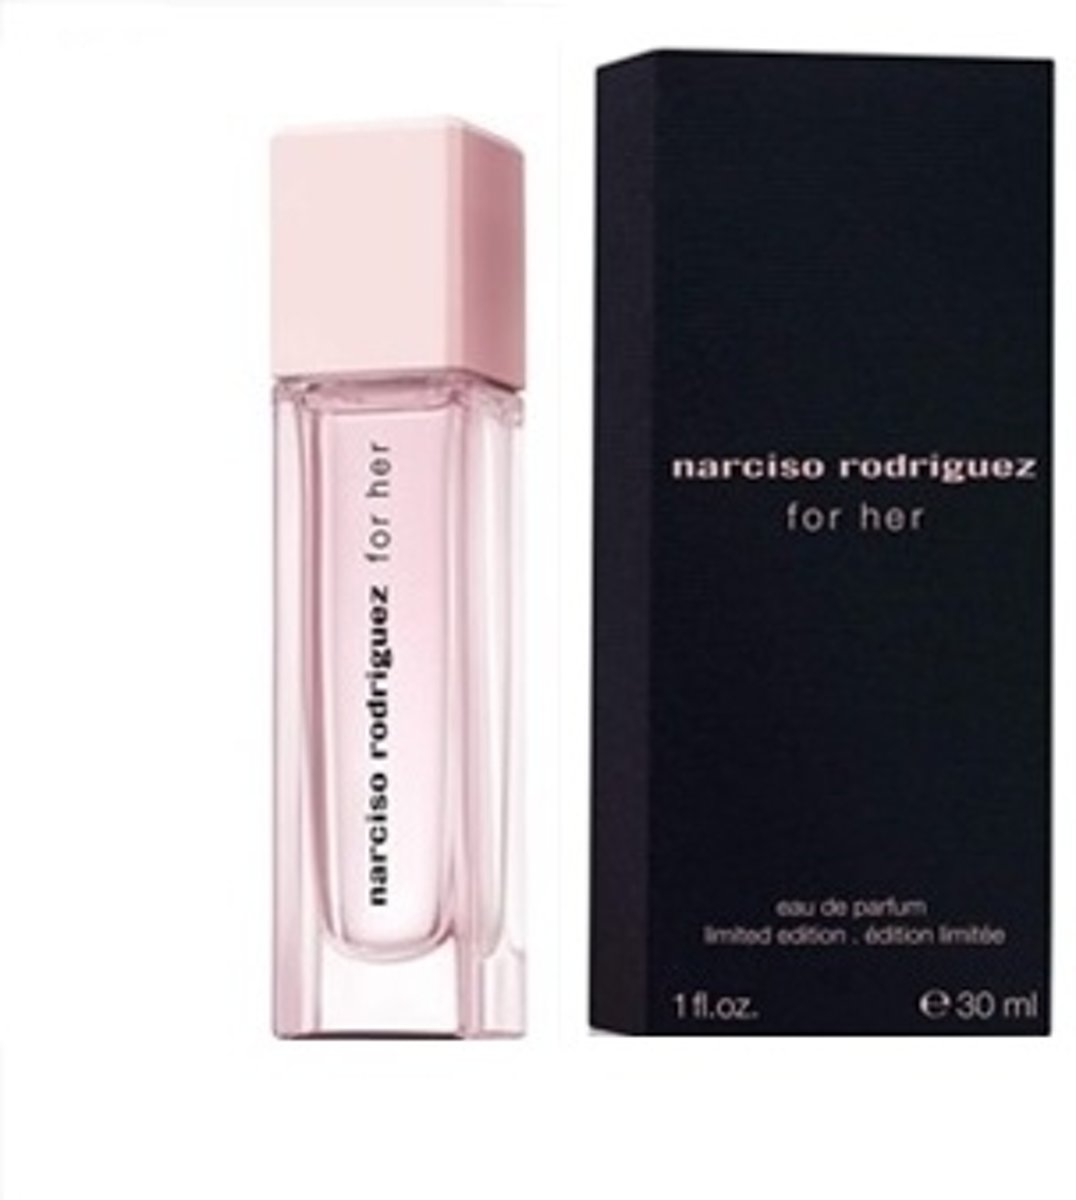 Narciso Rodriguez For her - 30 ml - Eau de Parfum